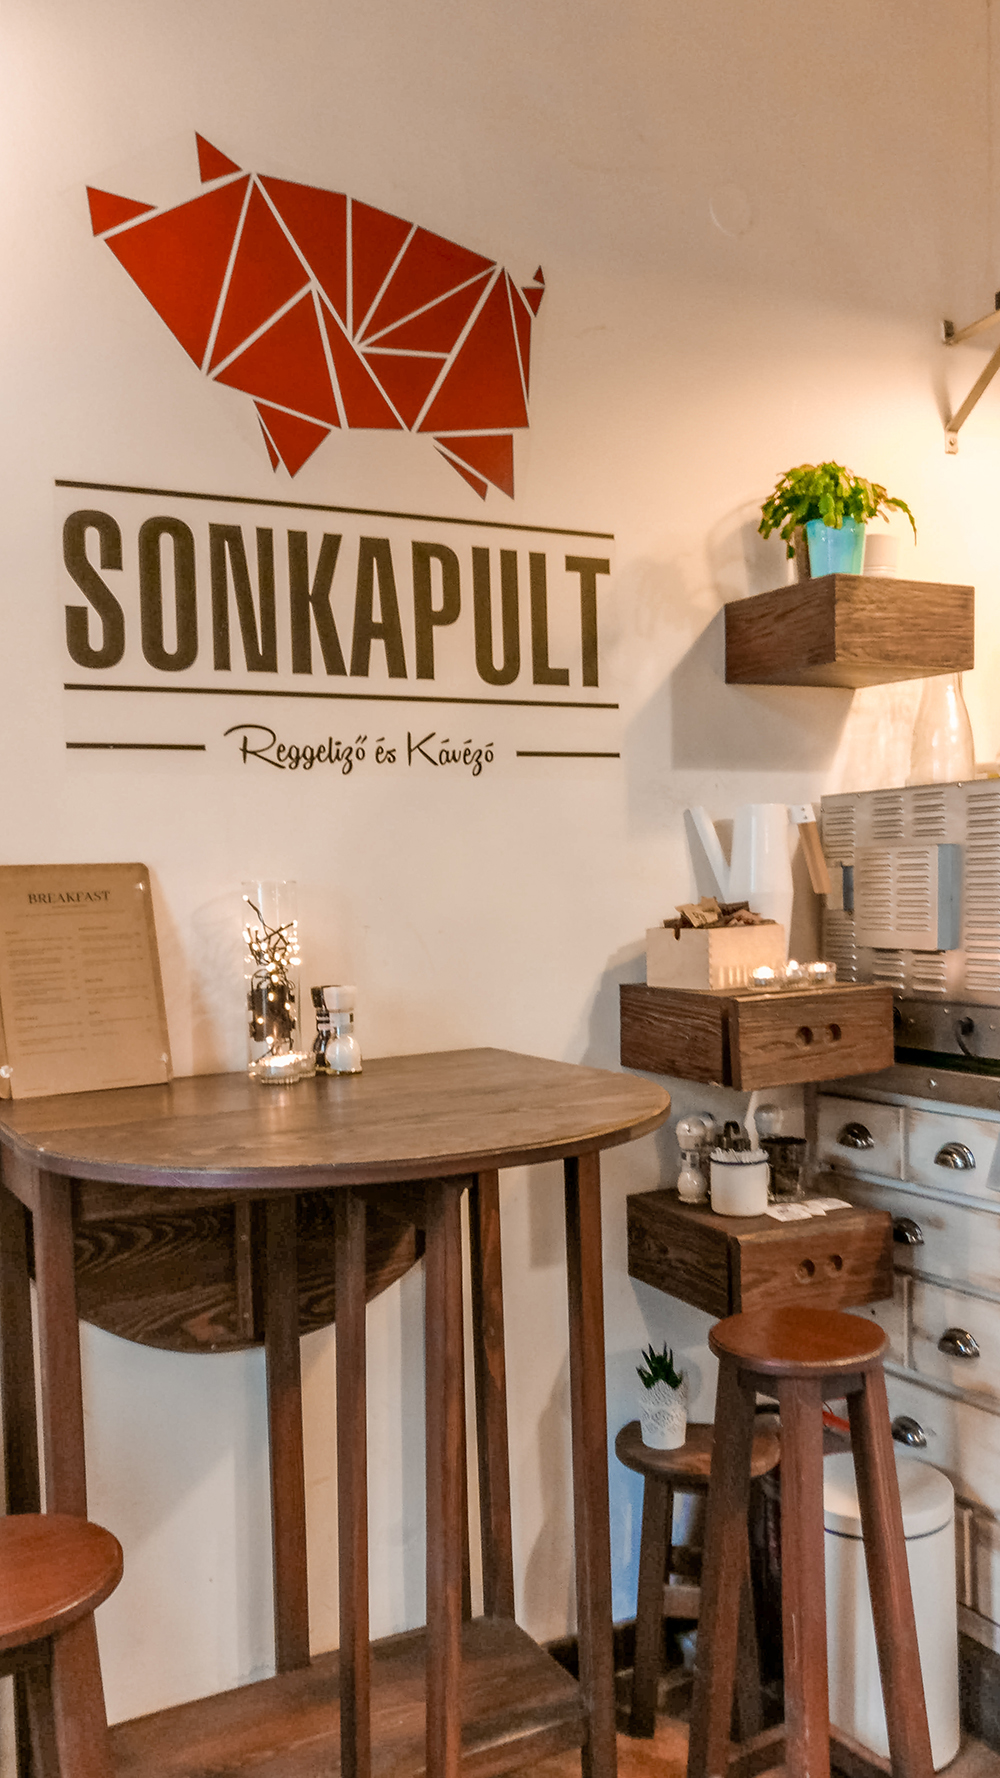 Sonkapult - Budapest's best breakfast & brunch places in the centre - Deák Ferenc square and Astoria | Aliz's Wonderland